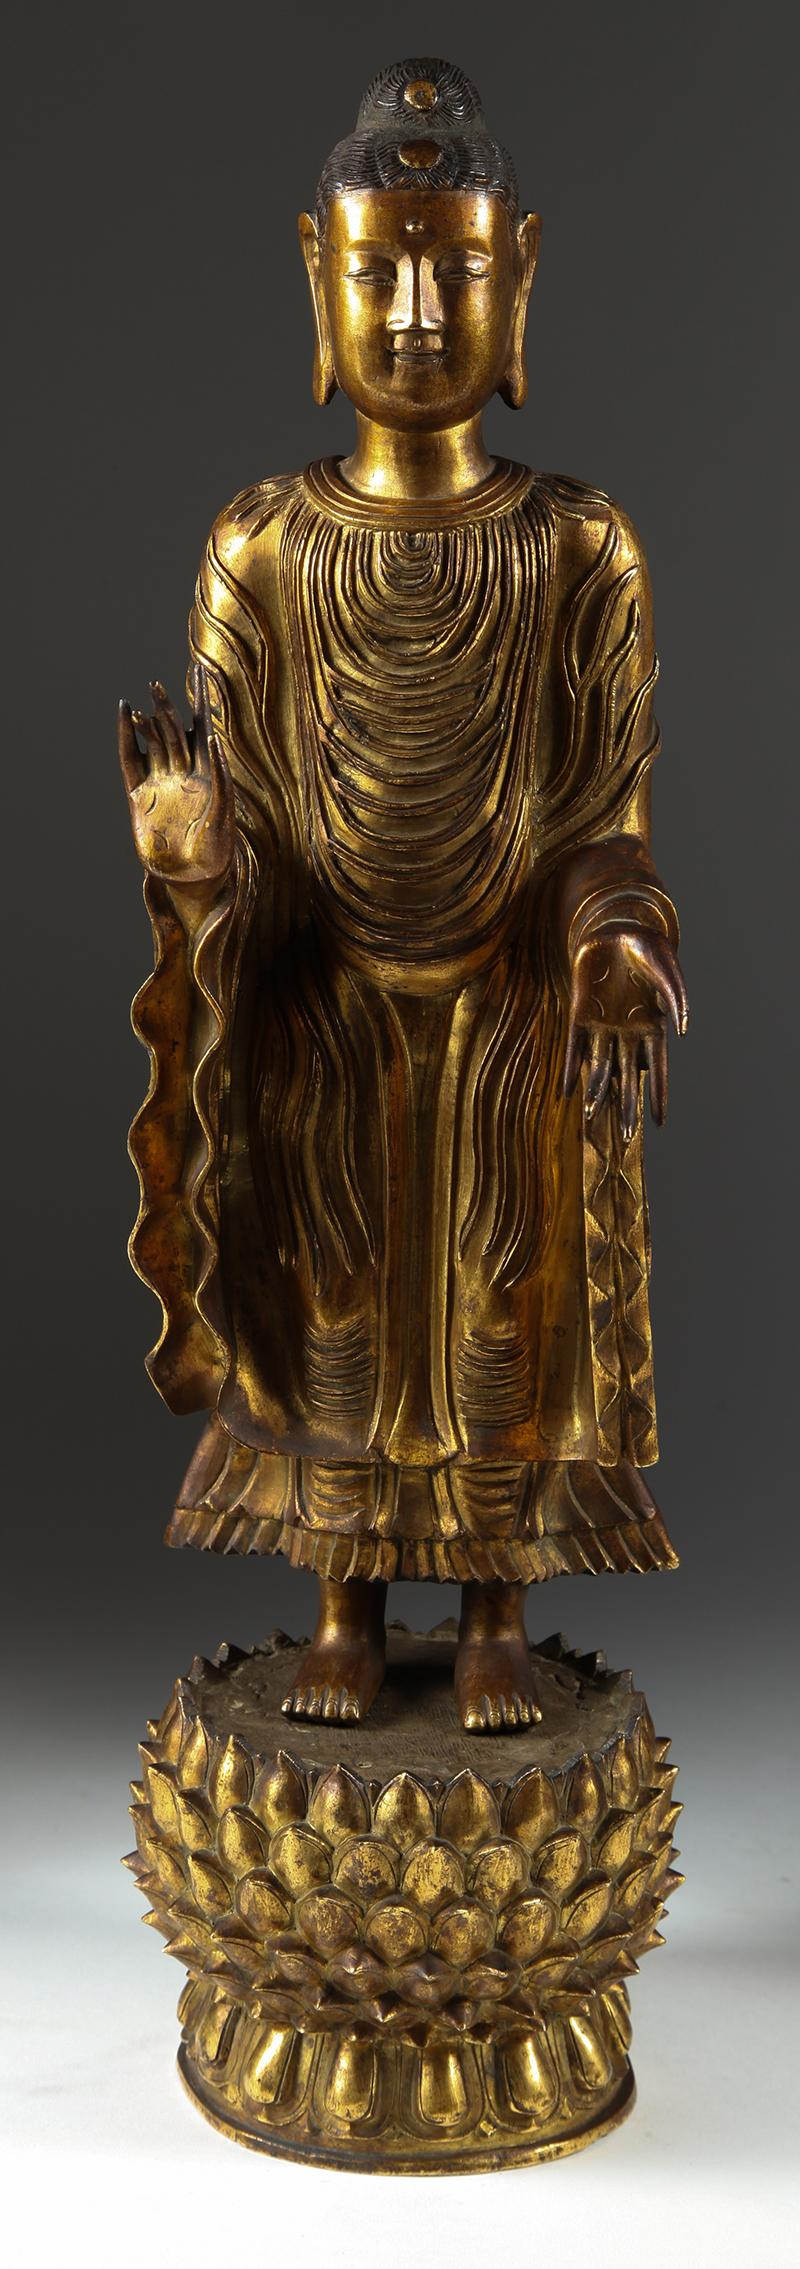 Chinese Auction, Chinese Gilt Bronze Standing Buddha on Lotus Base 17th 18th Century Asian ArtNew York Auction House, Houston Auction, Dallas Auction, San Antonio Auction, Chinese Auction, 铜鎏佛像, 站佛, 莲花宝座, 古董拍卖, 海外捡漏, 亚洲艺术